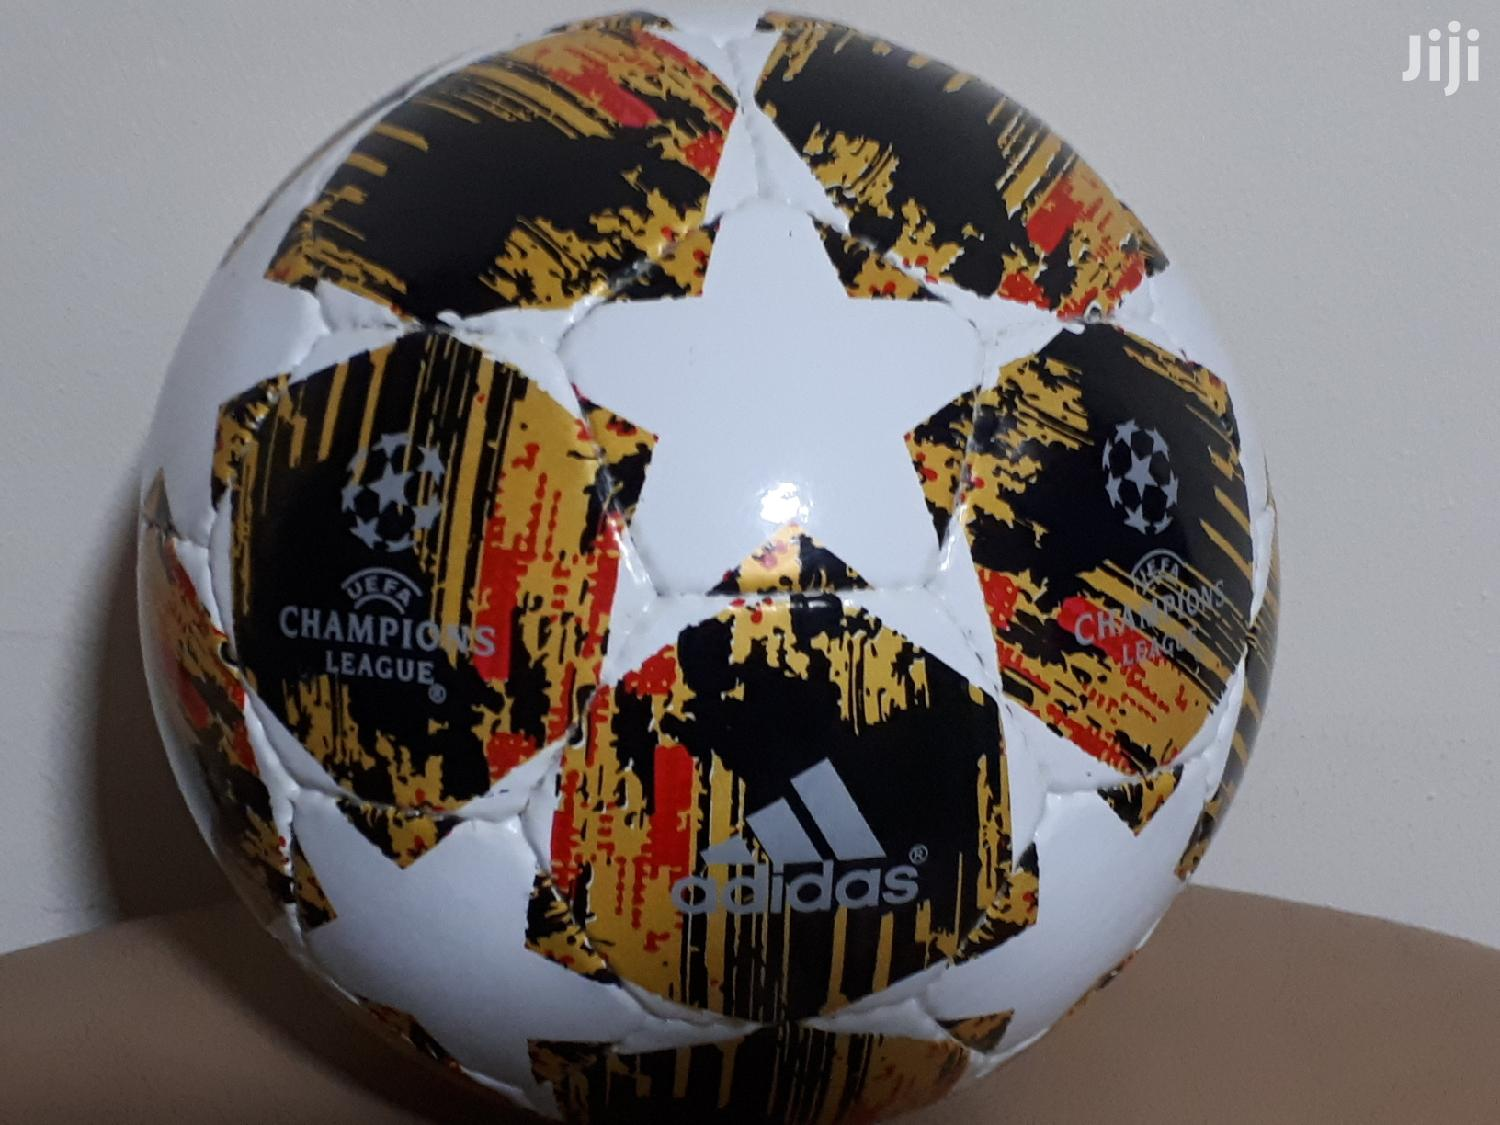 Quality Adidas Champions League Soccer Ball/ Football | Sports Equipment for sale in Teshie-Nungua Estates, Greater Accra, Ghana